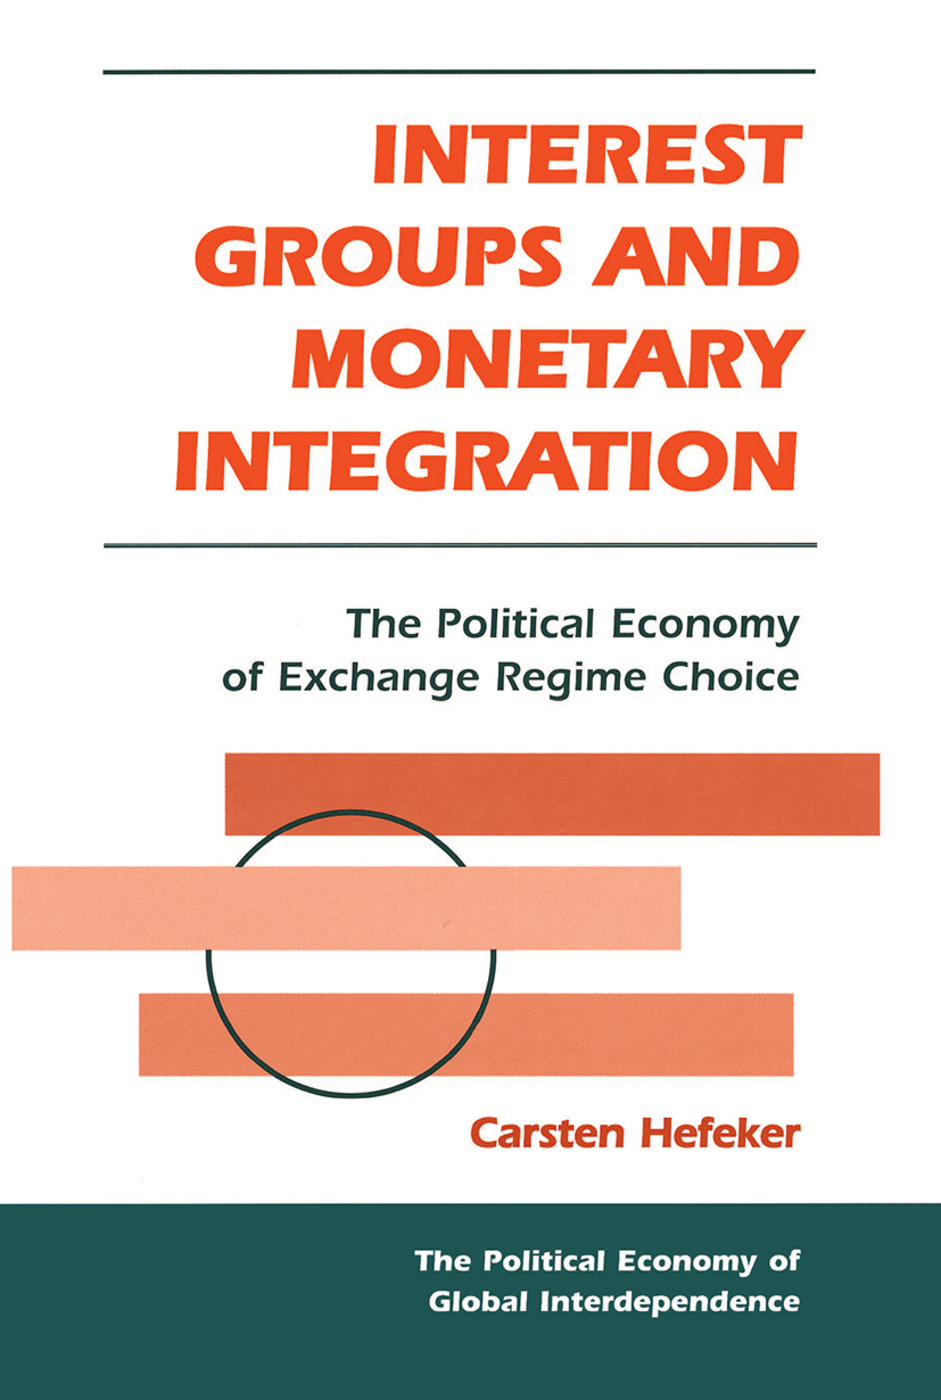 Interest Groups And Monetary Integration: The Political Economy Of Exchange Regime Choice book cover